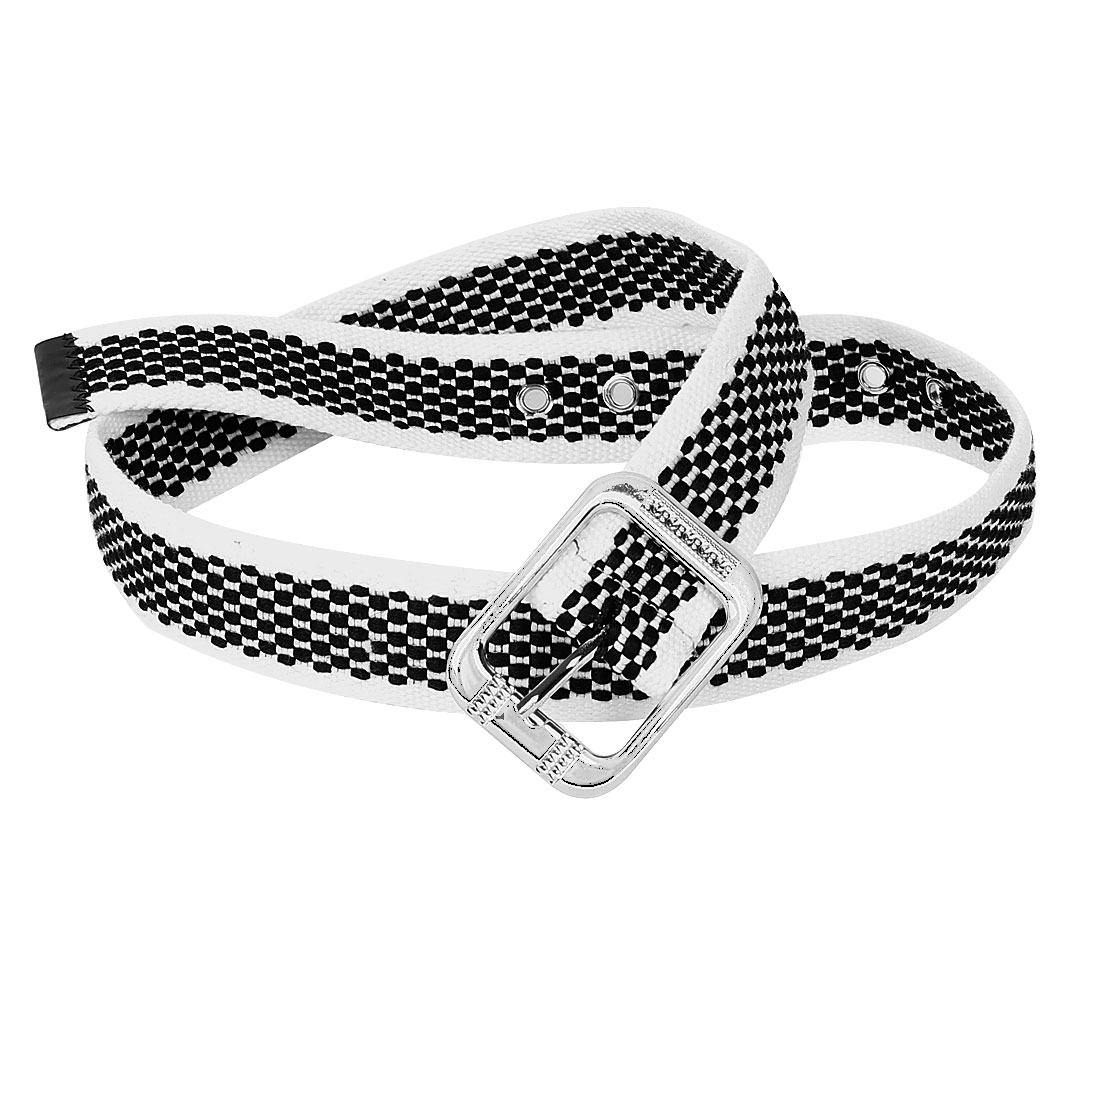 White Black Plaid Pattern Single Pin Buckle Textured Jeans Waist Belt for Lady